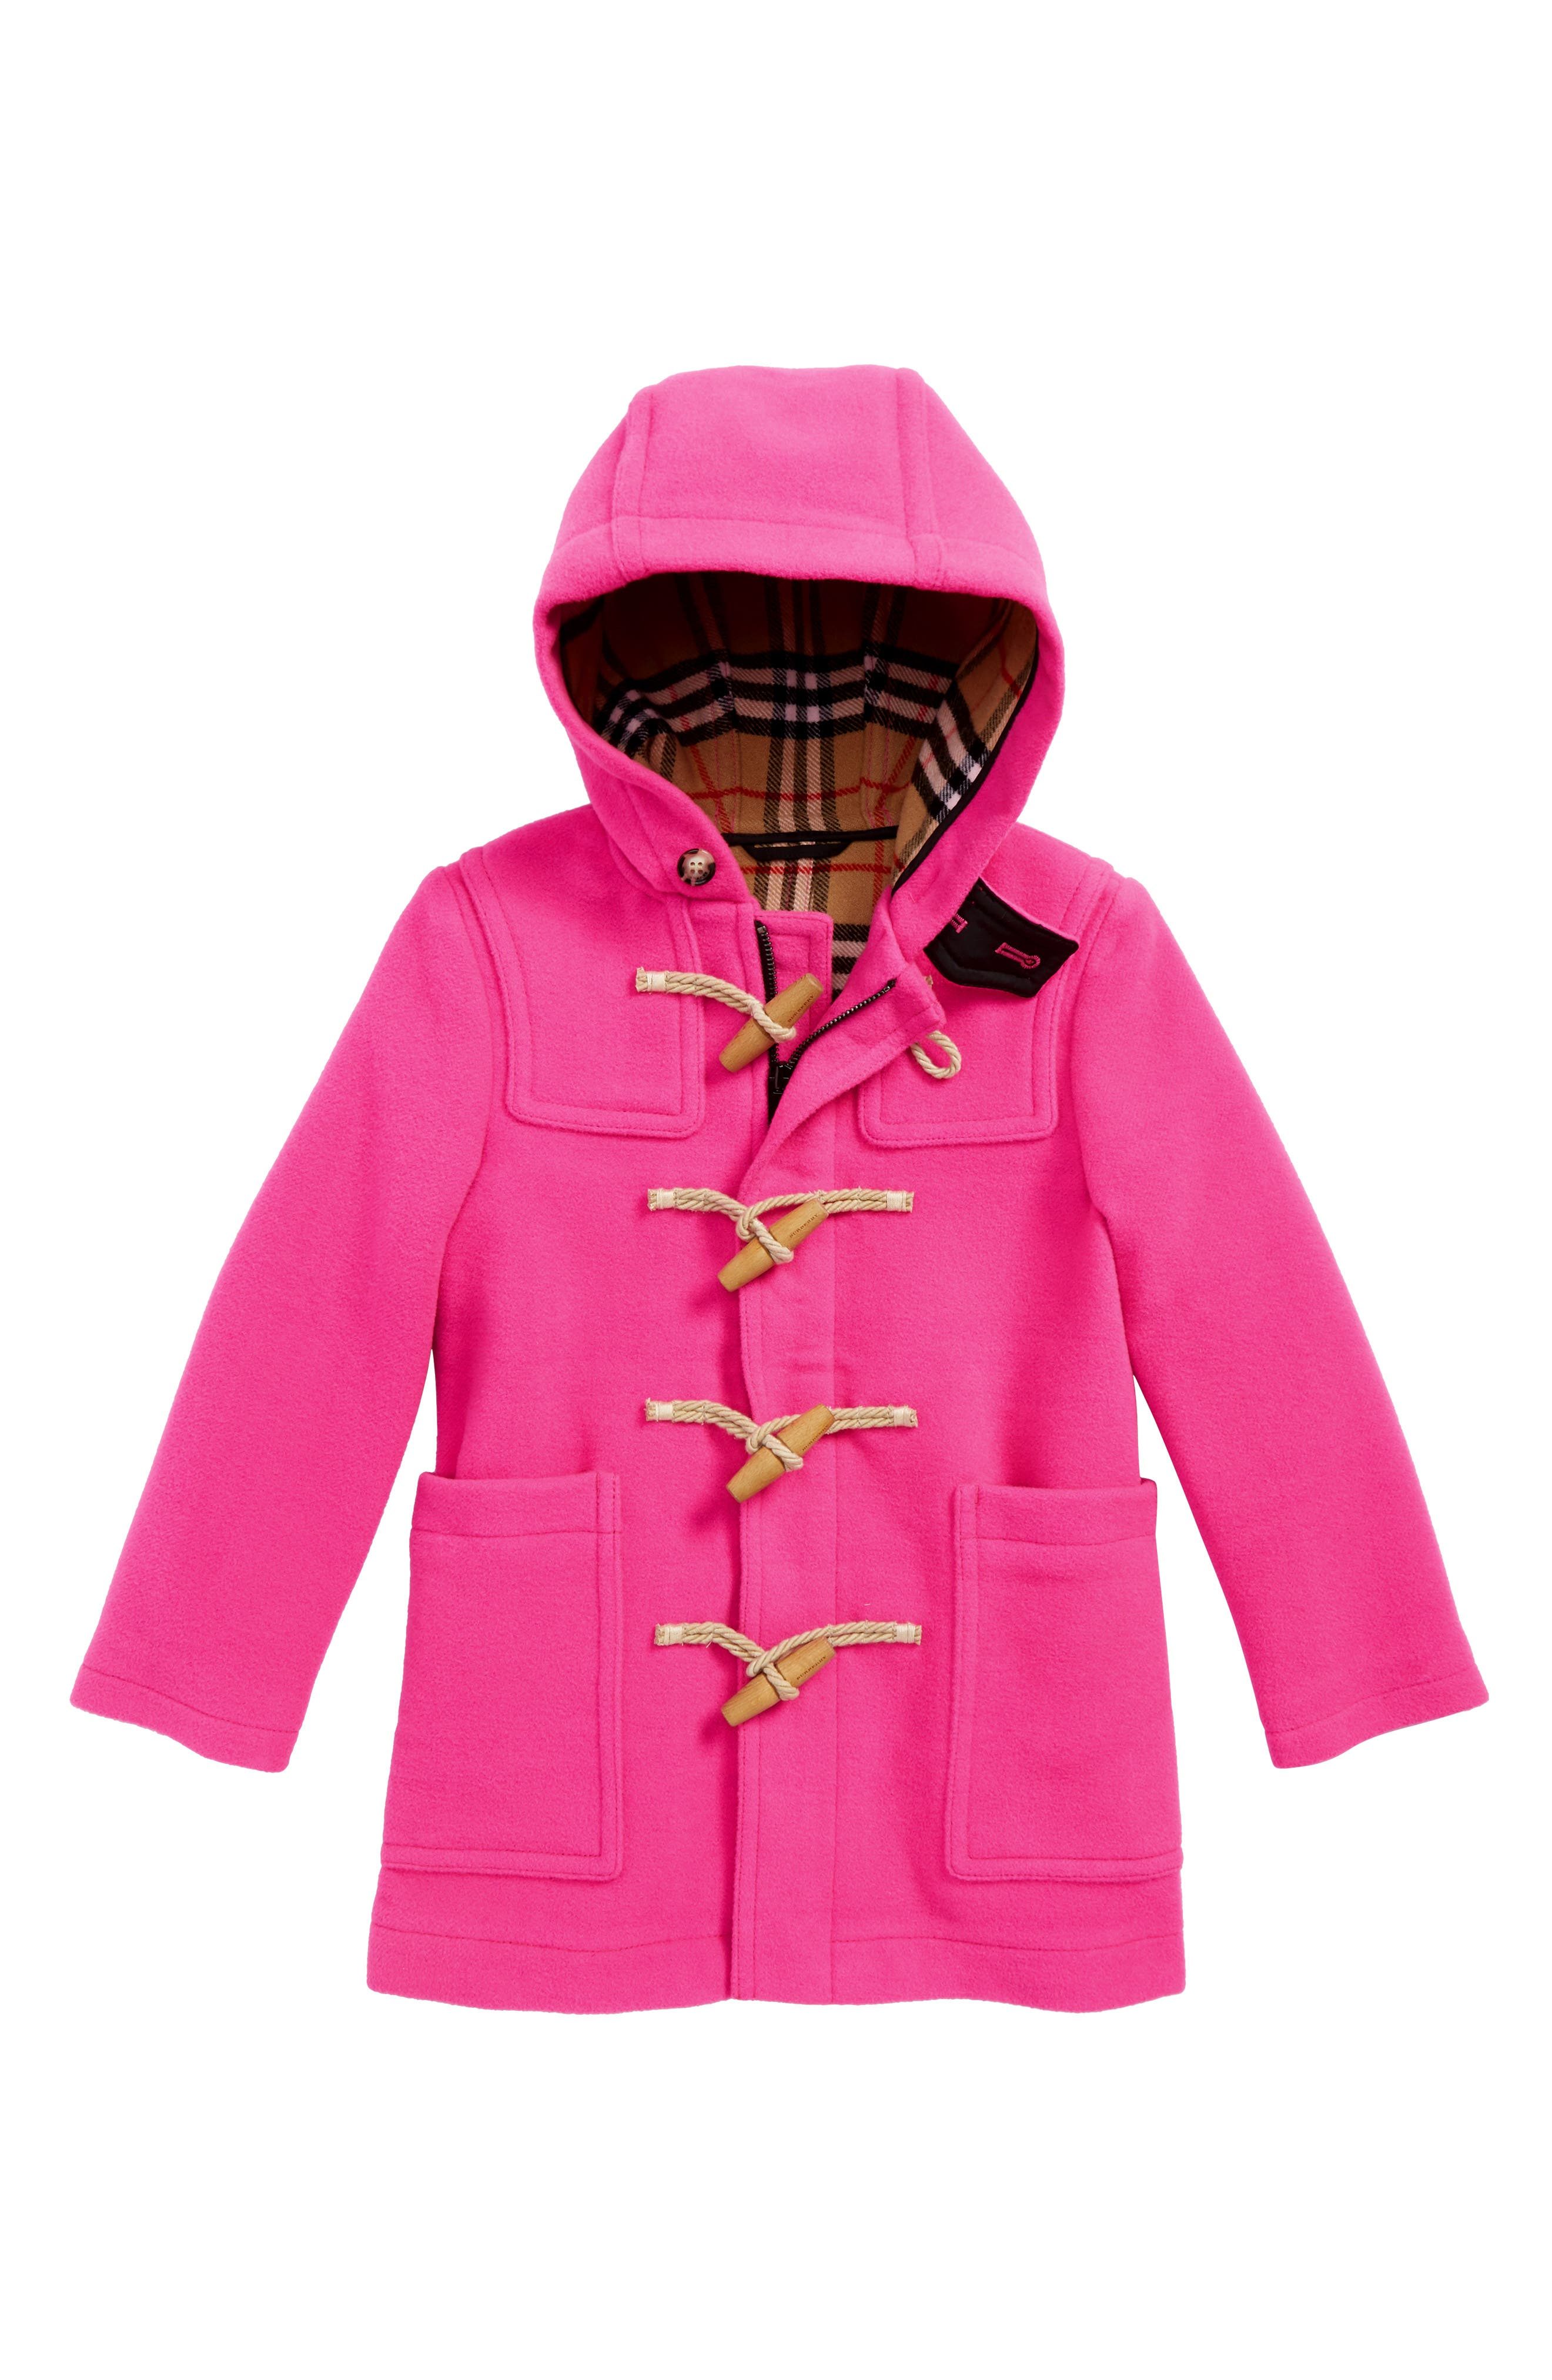 Girls Burberry DoubleFaced Wool Duffle Coat Size 4Y  Pink